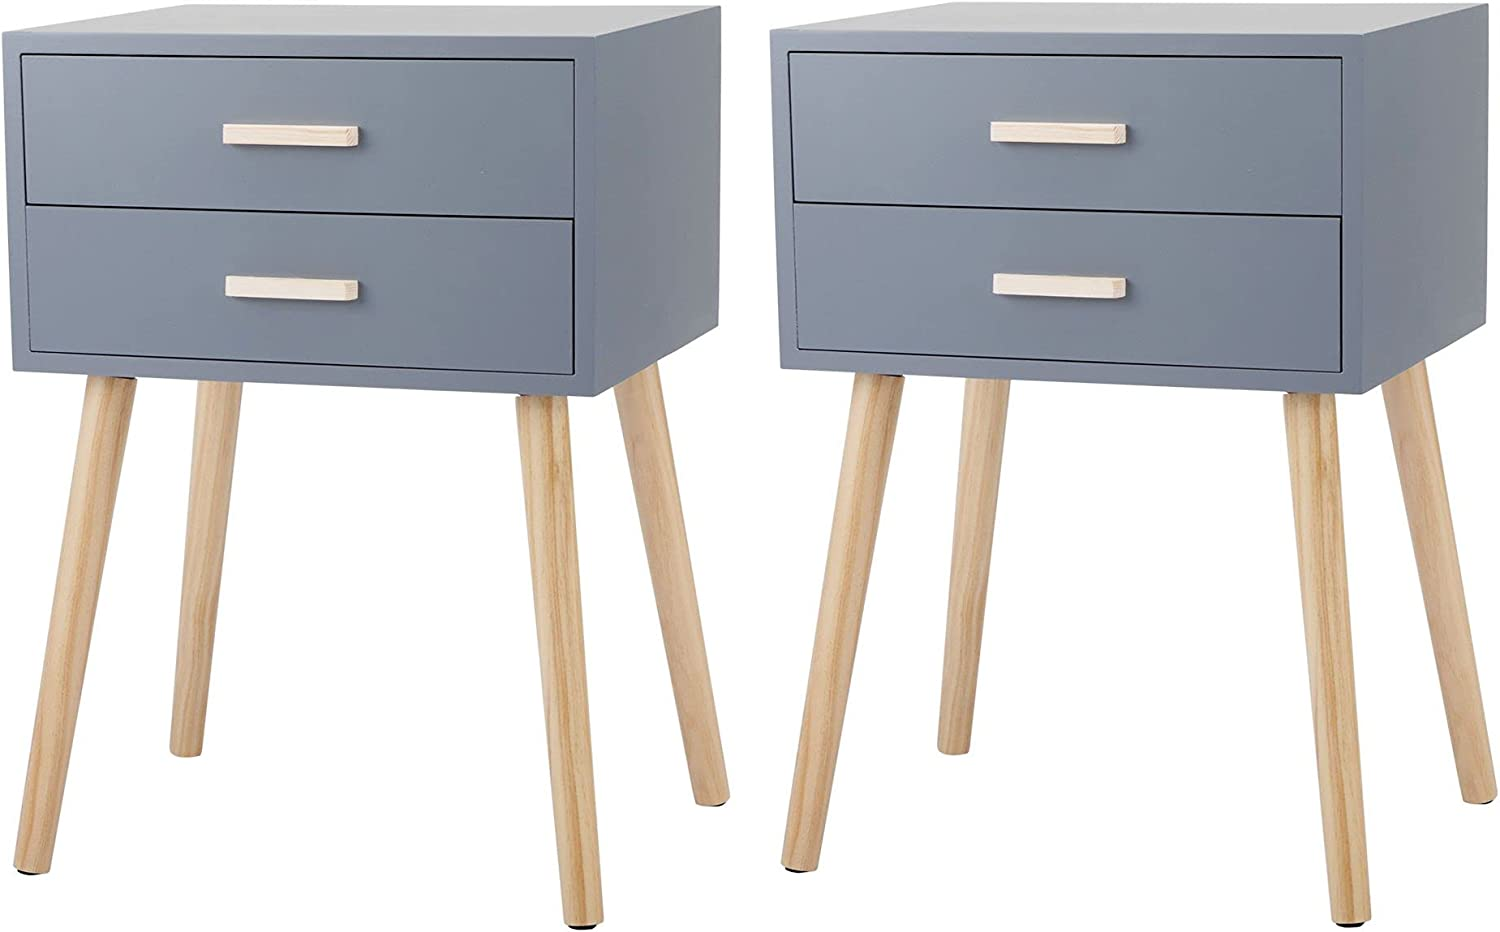 End Table Popular popular Set of 2 with Nights Solid Max 57% OFF Mid Century Drawers Wood